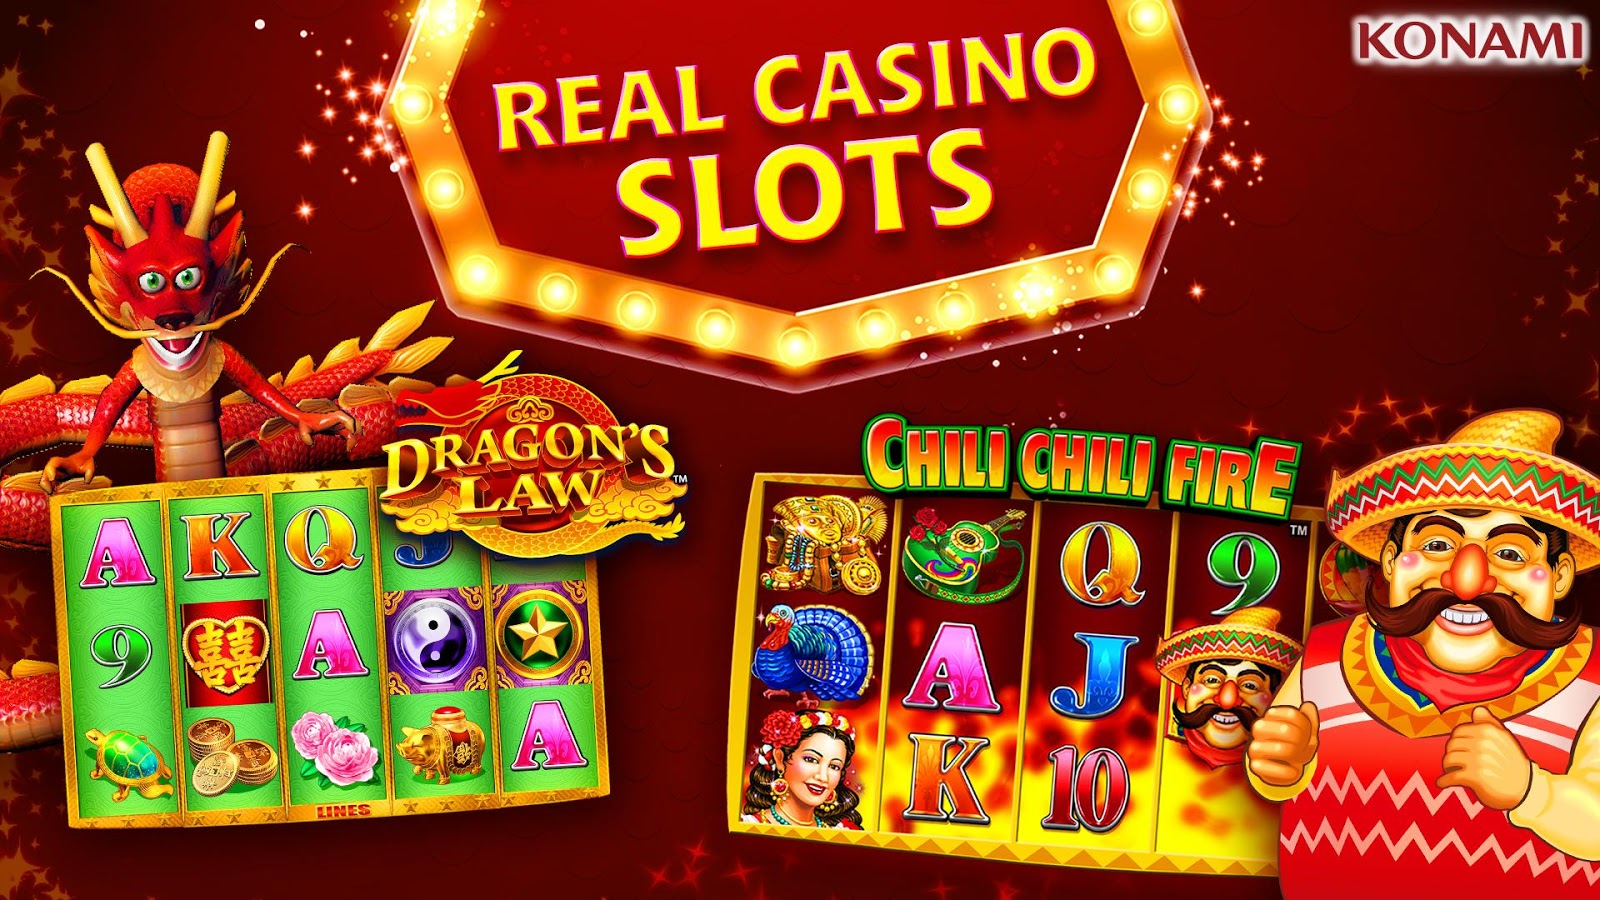 Play Konami Slots Online For Free